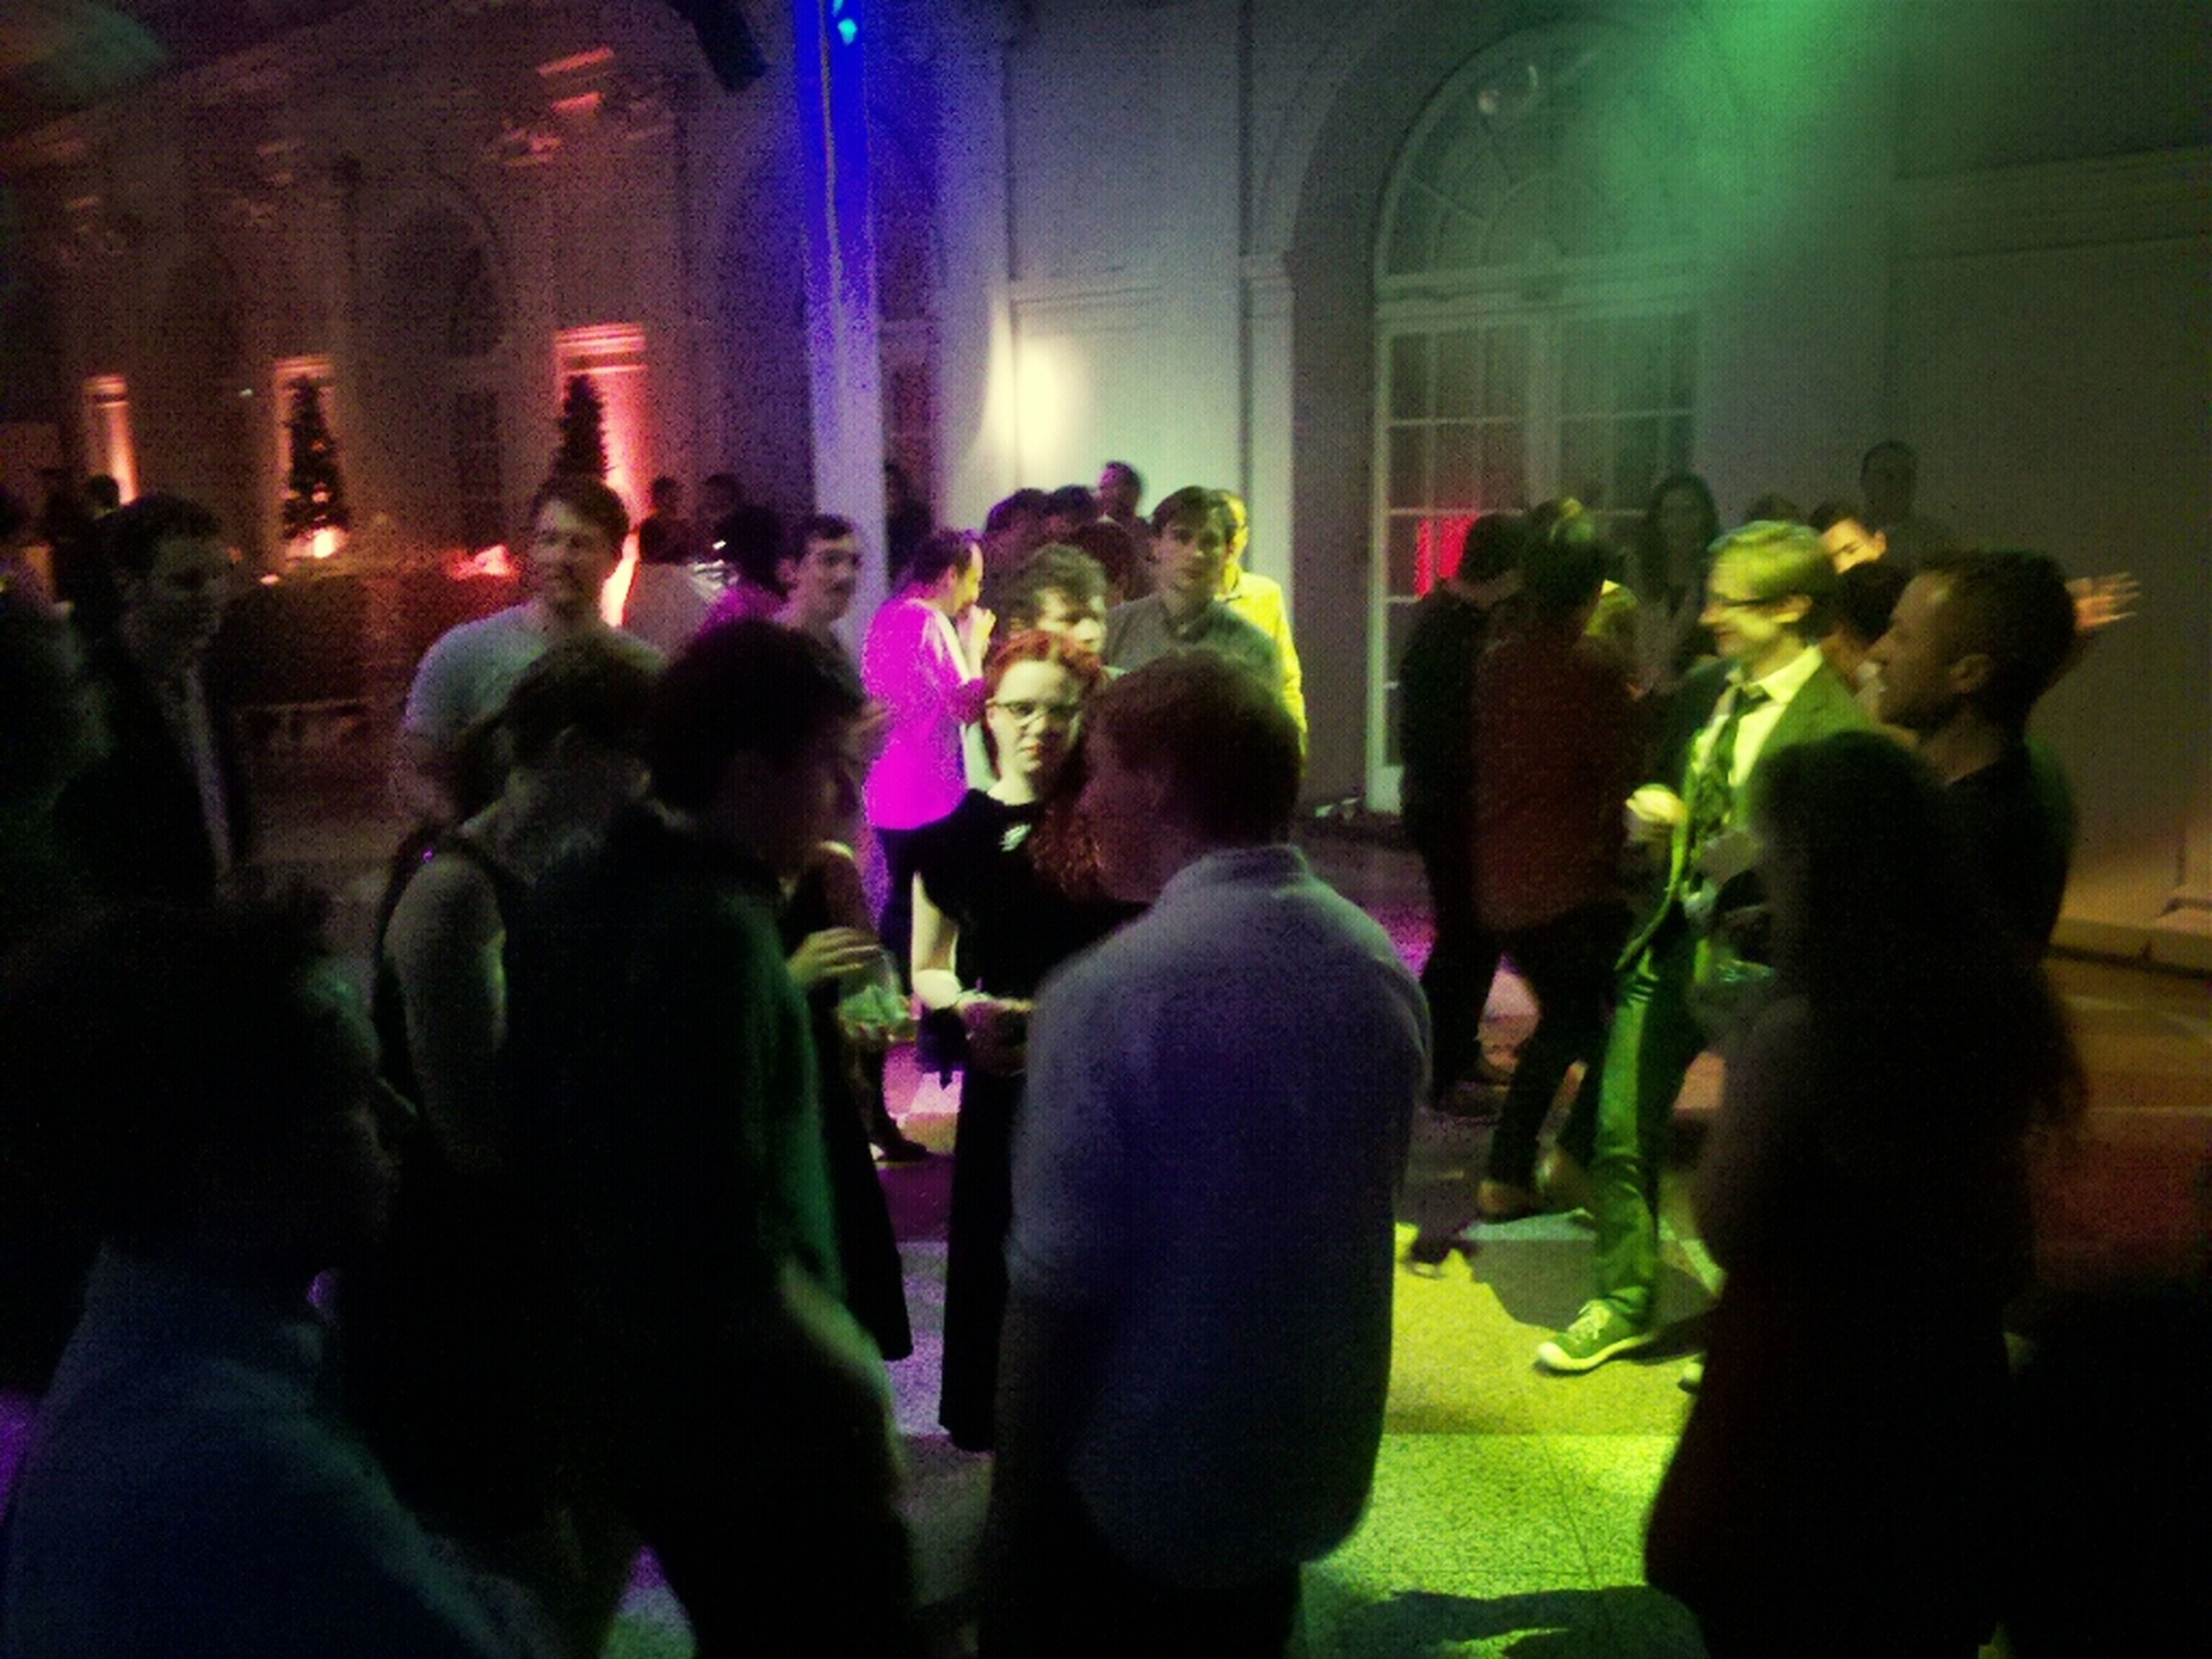 large group of people, lifestyles, illuminated, men, person, crowd, leisure activity, night, indoors, togetherness, arts culture and entertainment, enjoyment, nightlife, event, fun, music, performance, music festival